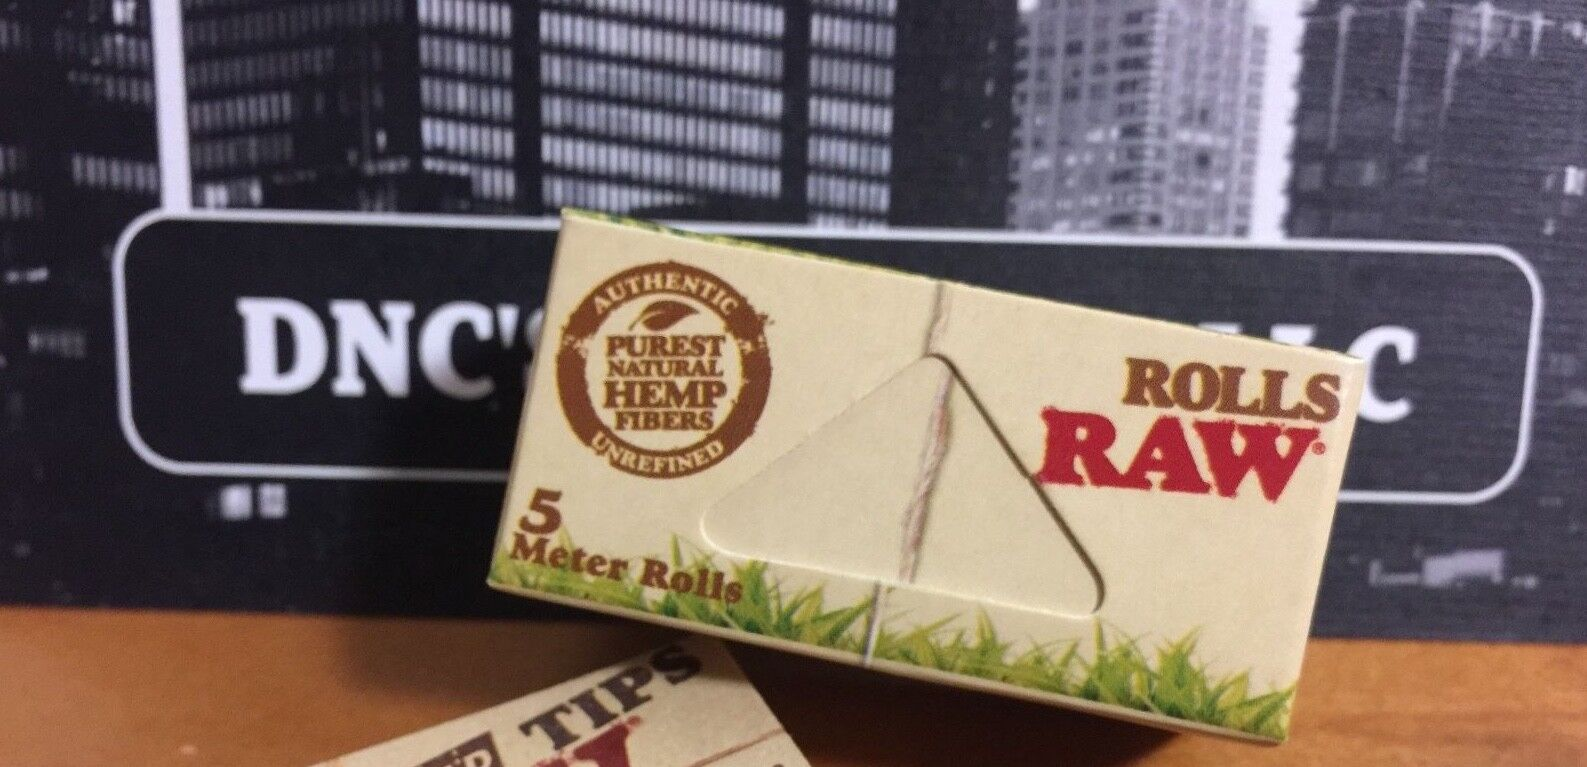 Raw Organic Hemp 5 Meter Rolls Natural Unrefined Hemp Rolling Papers